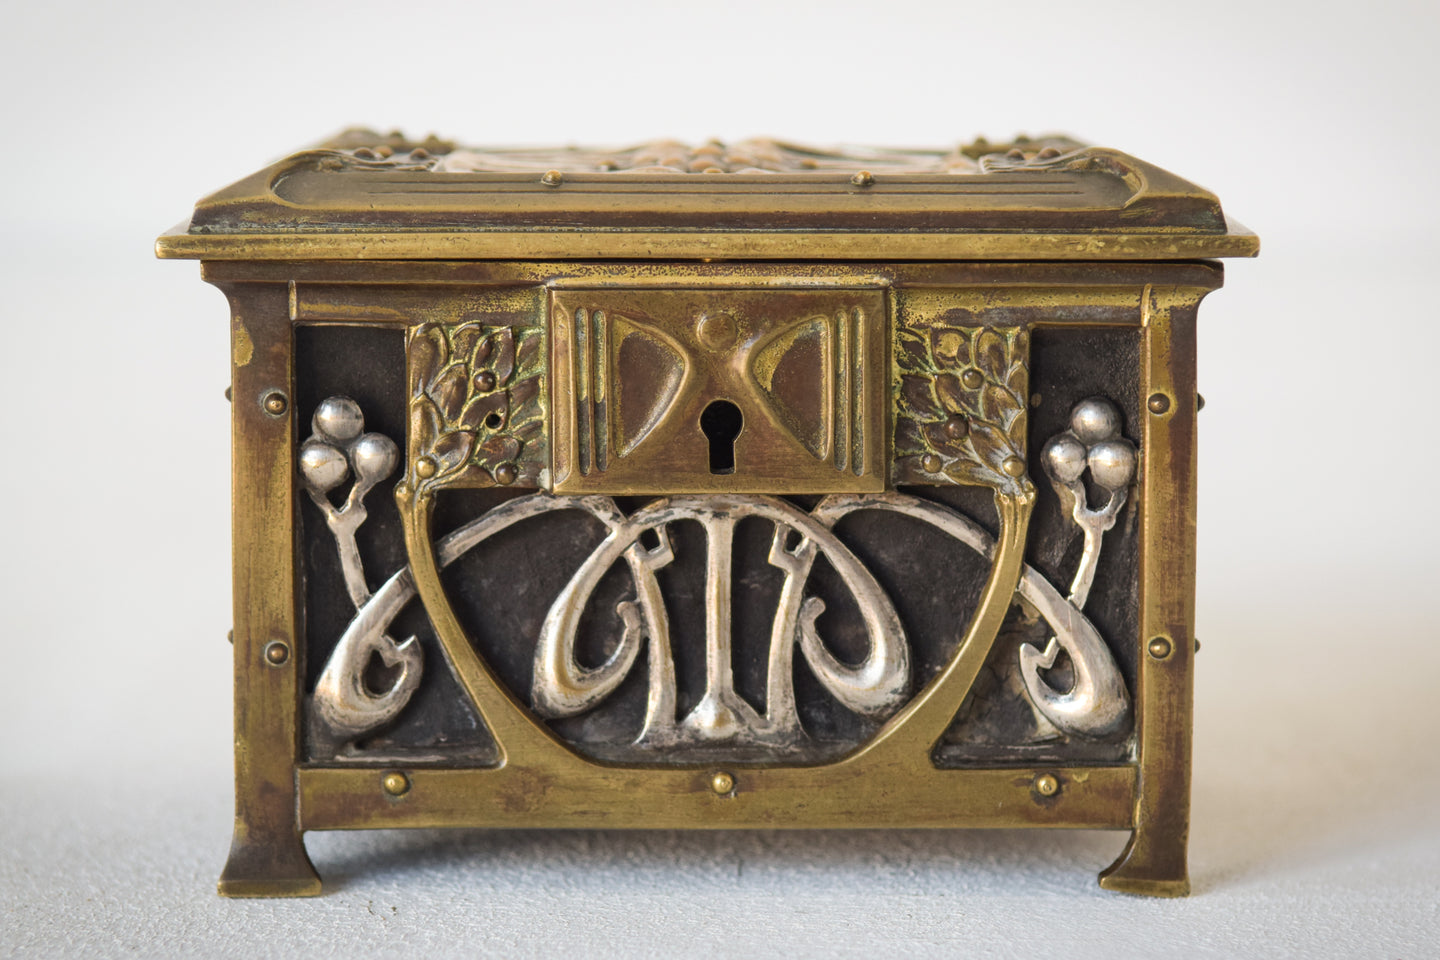 Early Art Nouveau Handmade Box in Brass and Silver